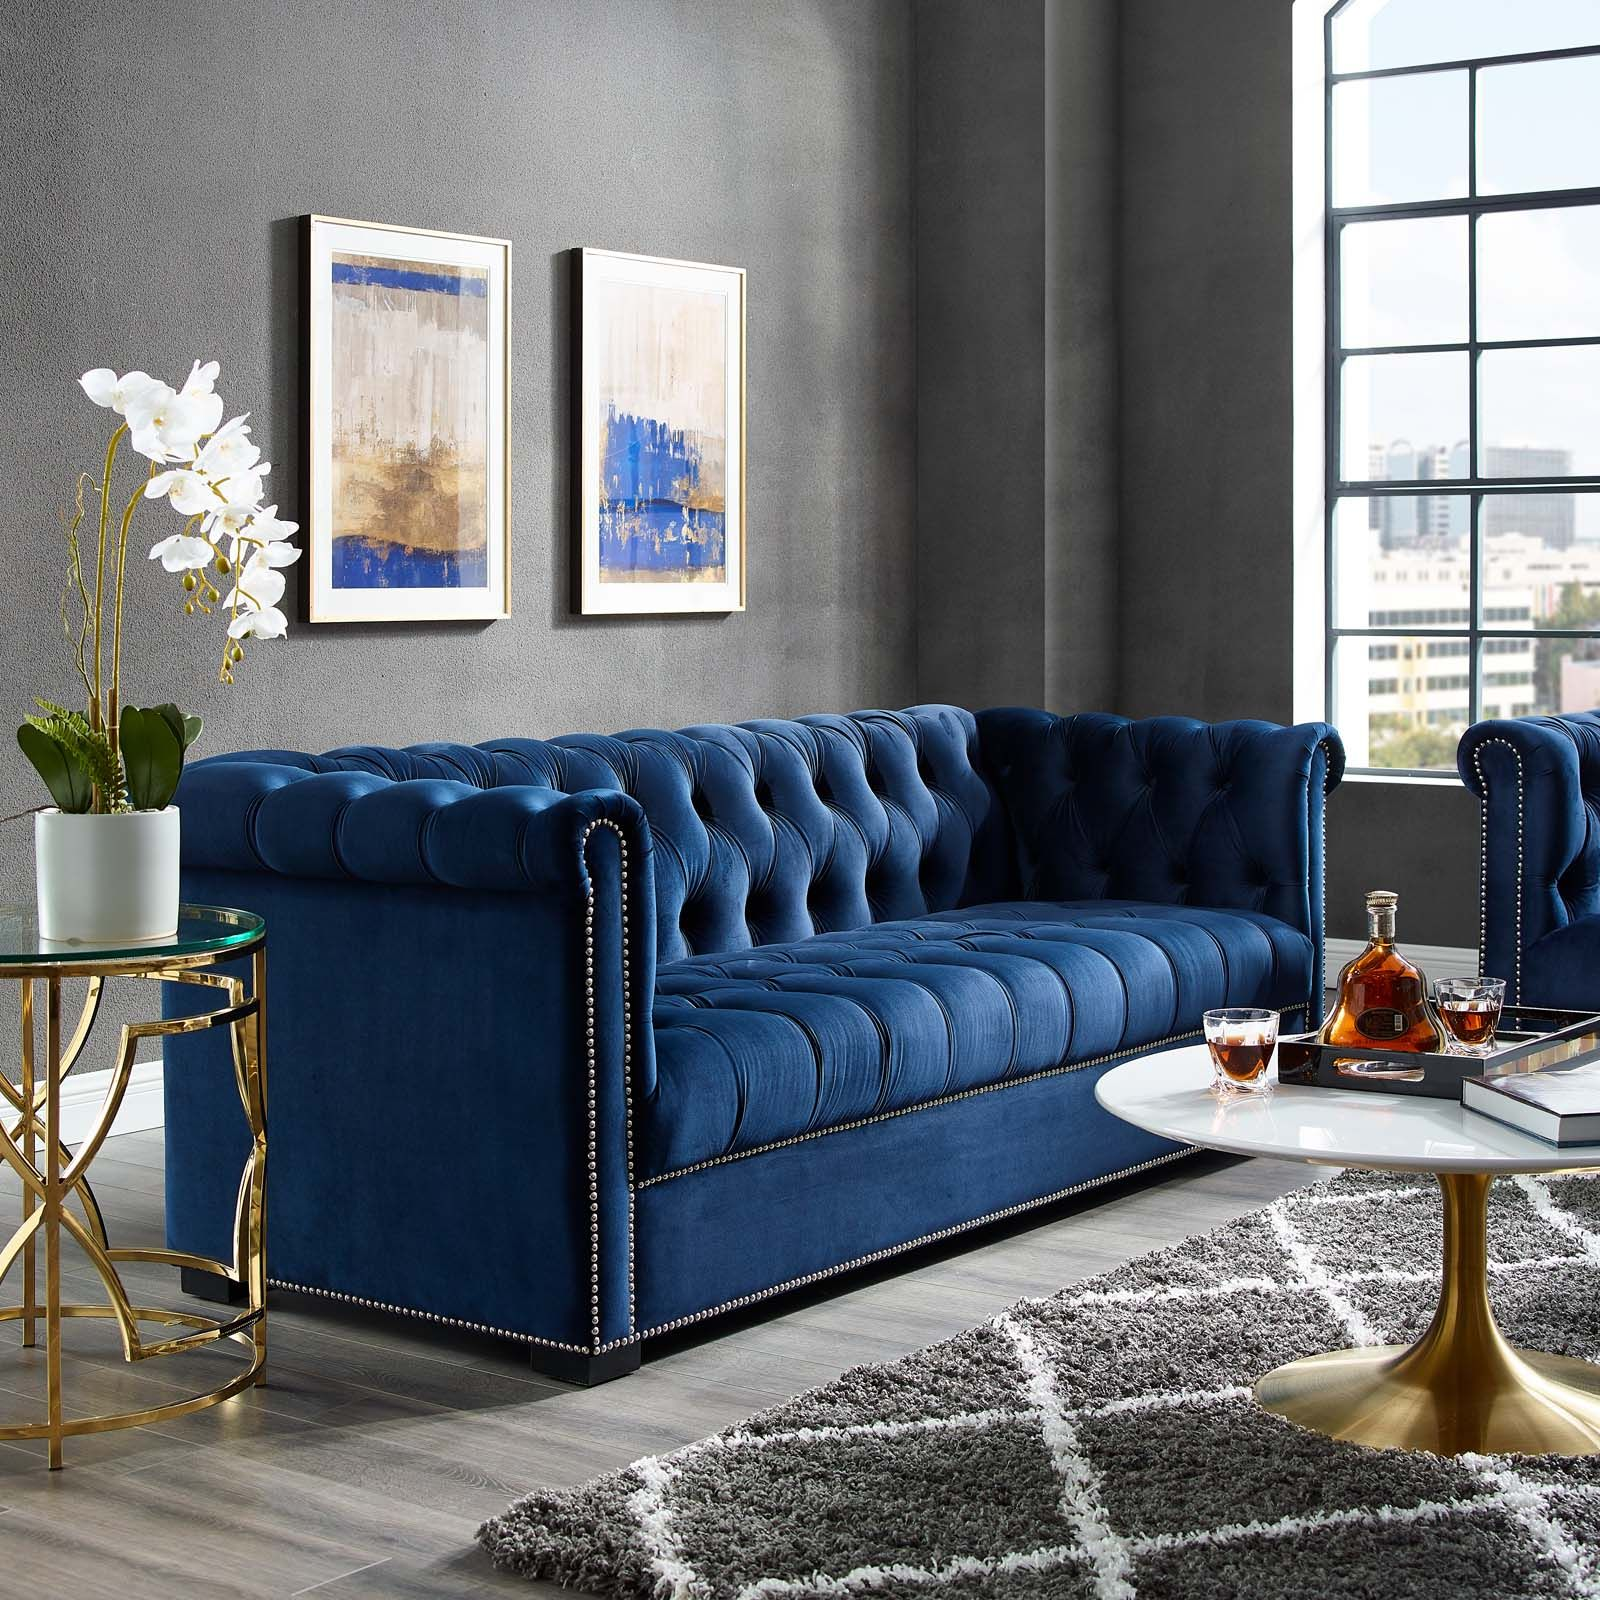 Modway Heritage Velvet Upholstered Sofa Multiple Colors Walmart Com Blue Sofa Living Blue Living Room Decor Velvet Sofa Living Room